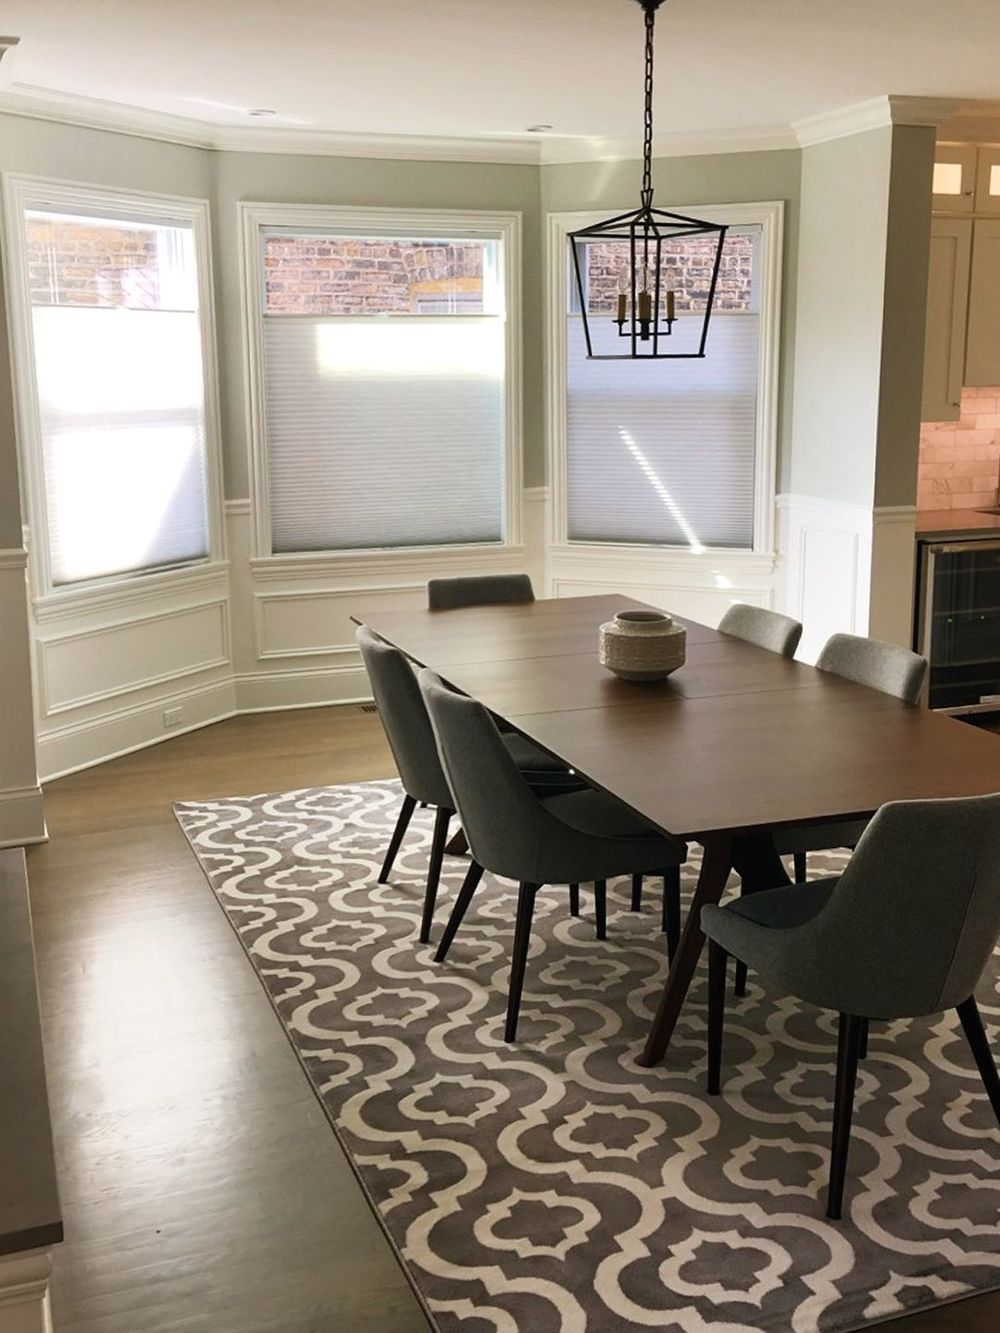 Dining area featuring a wooden dining table paired with gray modern chairs set on top of a stylish area rug covering the hardwood flooring.